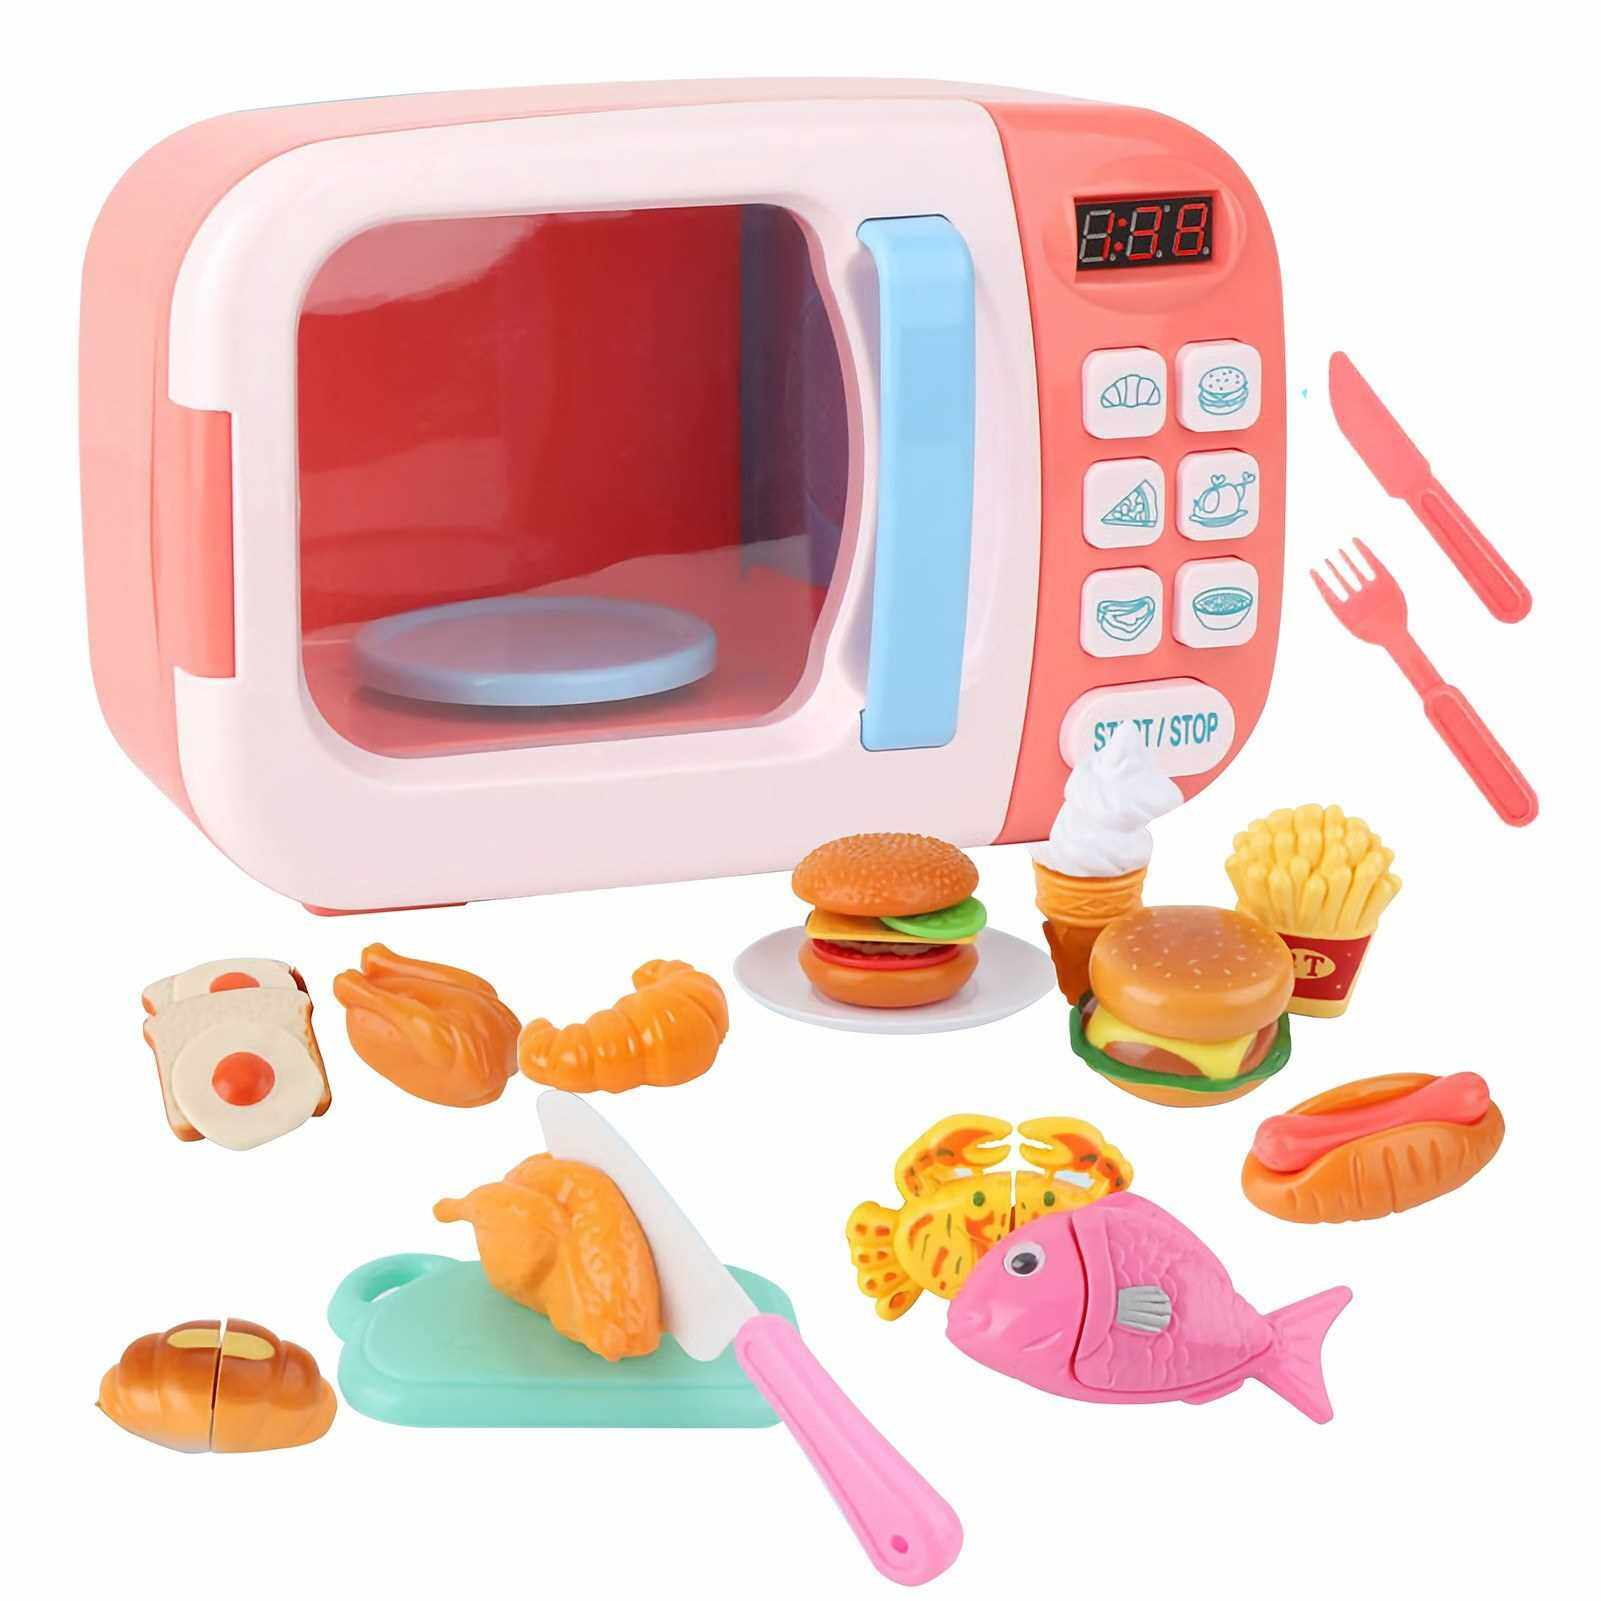 Best Selling 31 PCS Kitchen Microwave Play Set Toddler Electronic Cooking Food Accessories Pretending Toy Realistic Light Rotation Clock Timing Christmas Birthday Gift for Kid Girls Boys (Pink)